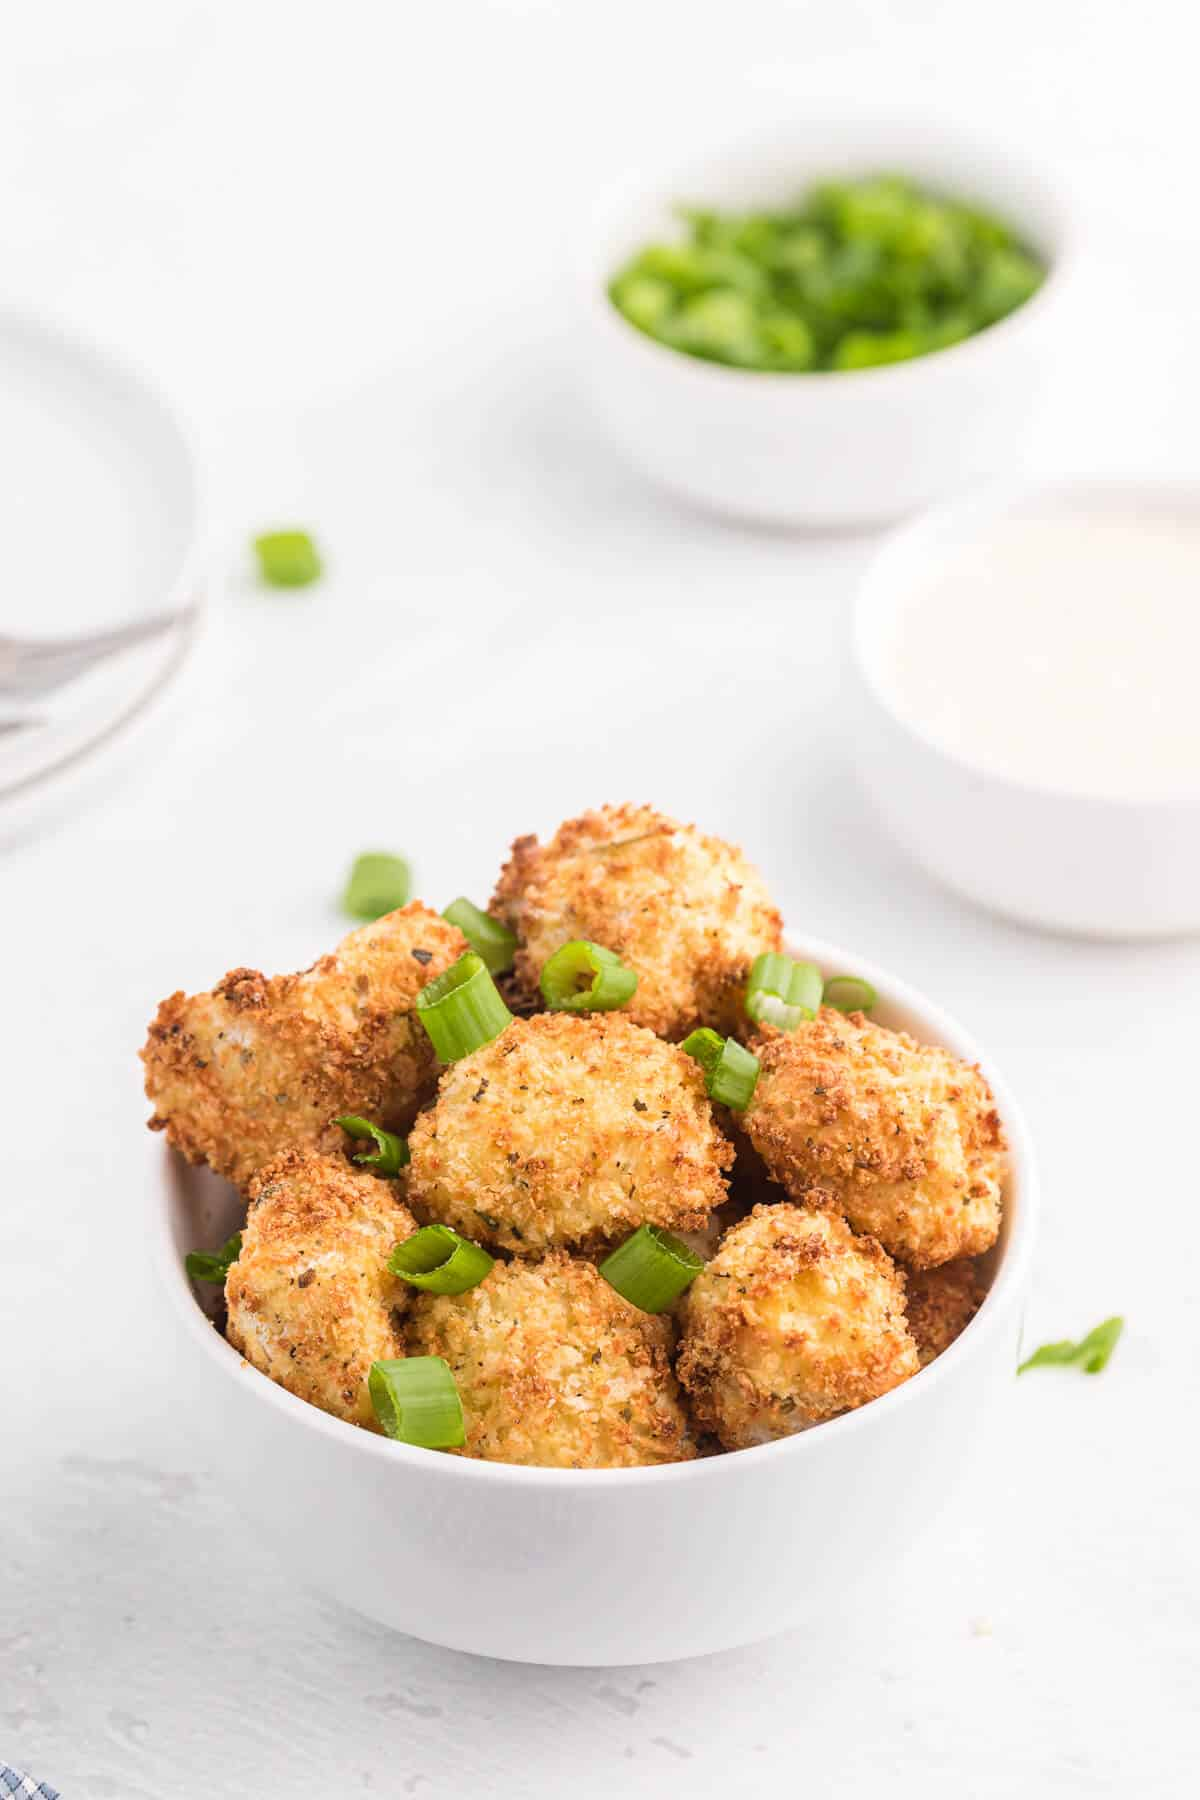 Air Fryer Cauliflower Bites - Get your kids to eat their veggies! Air fried cauliflower that's the perfect side dish or appetizer for dipping.